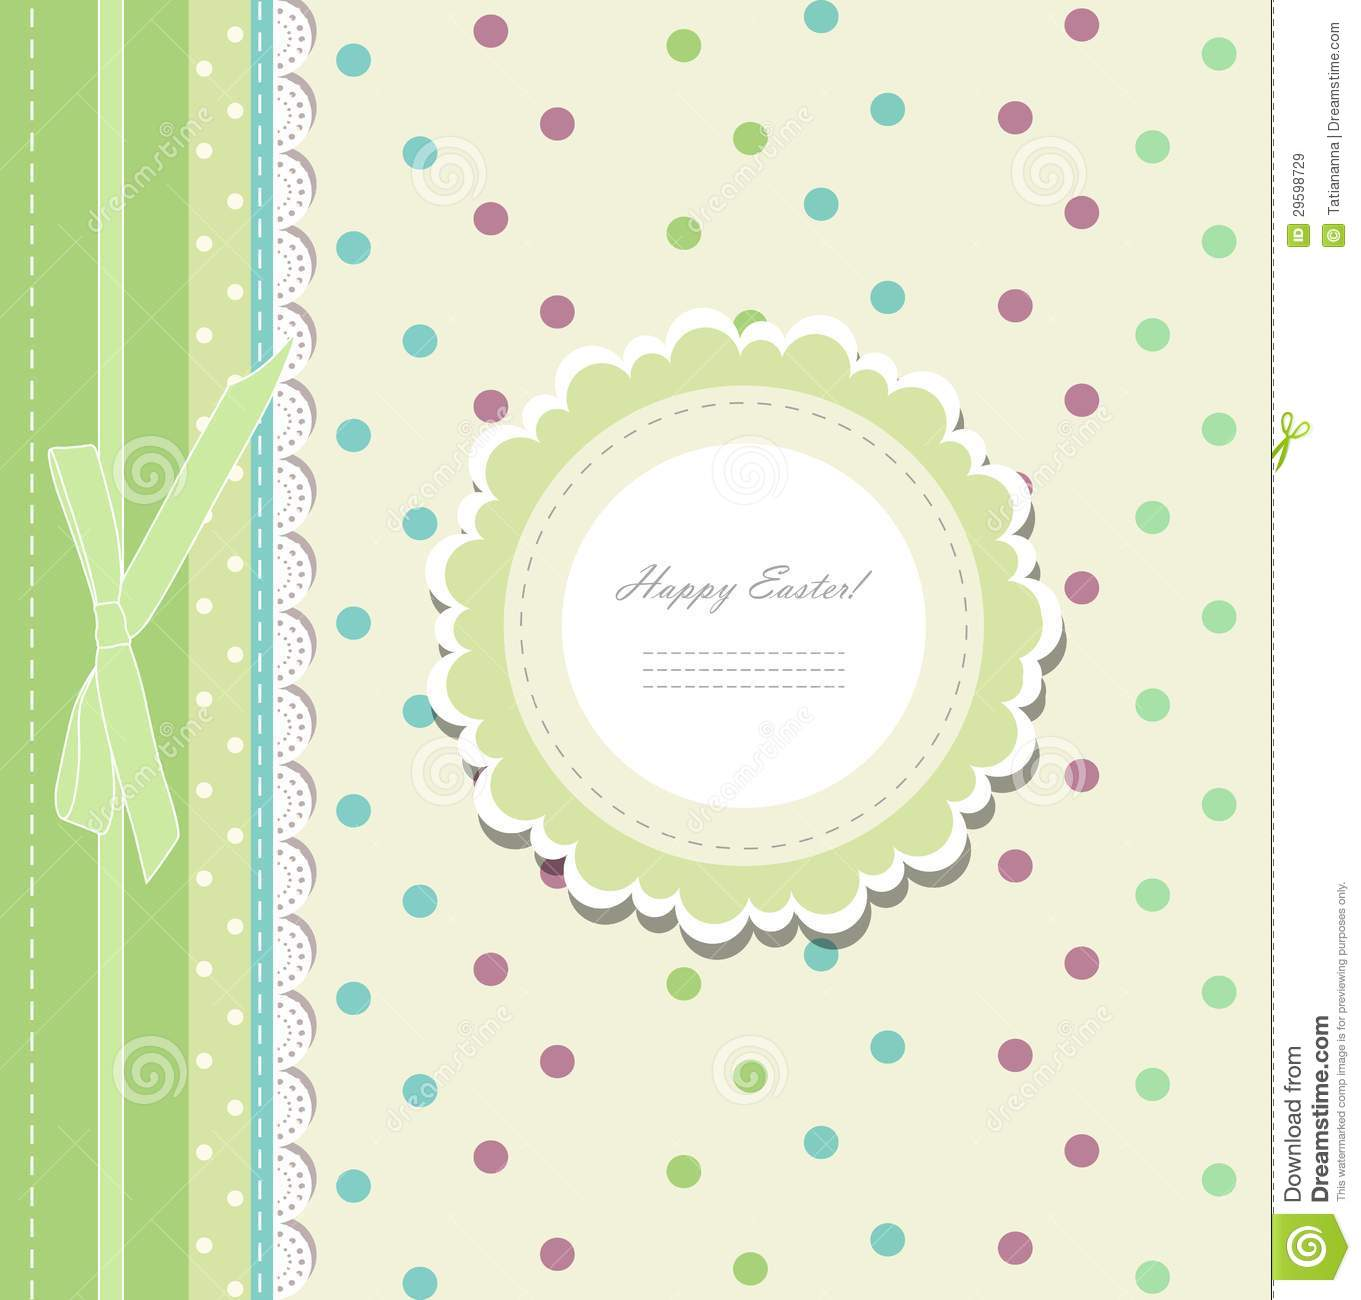 Vintage Baby Shower Album Vector Royalty Free Stock Images ...